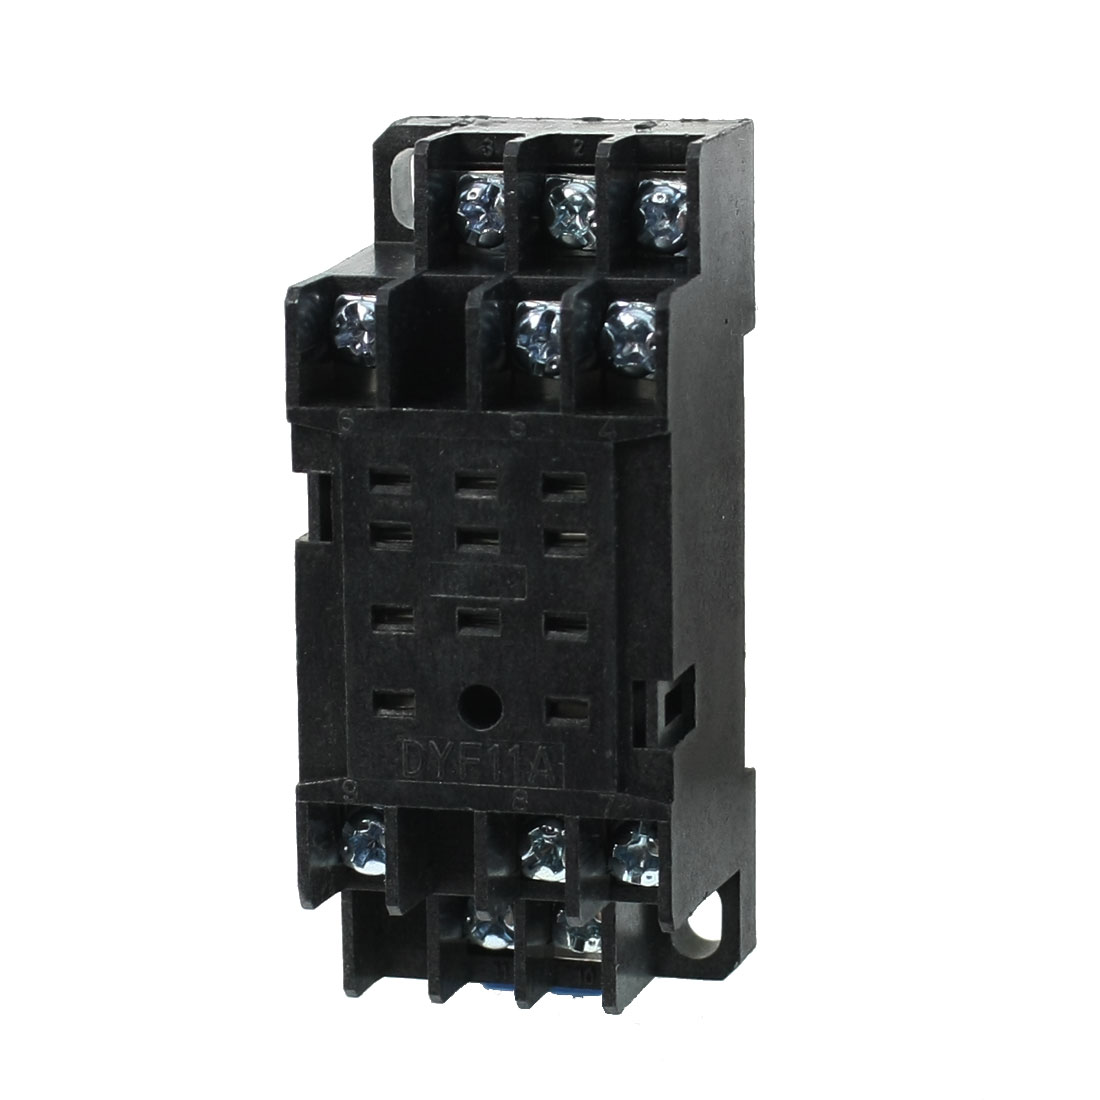 PYF11A Relay Socket Base DIN Track 8 Holes 8Pin for MY3NJ HH53P Relay